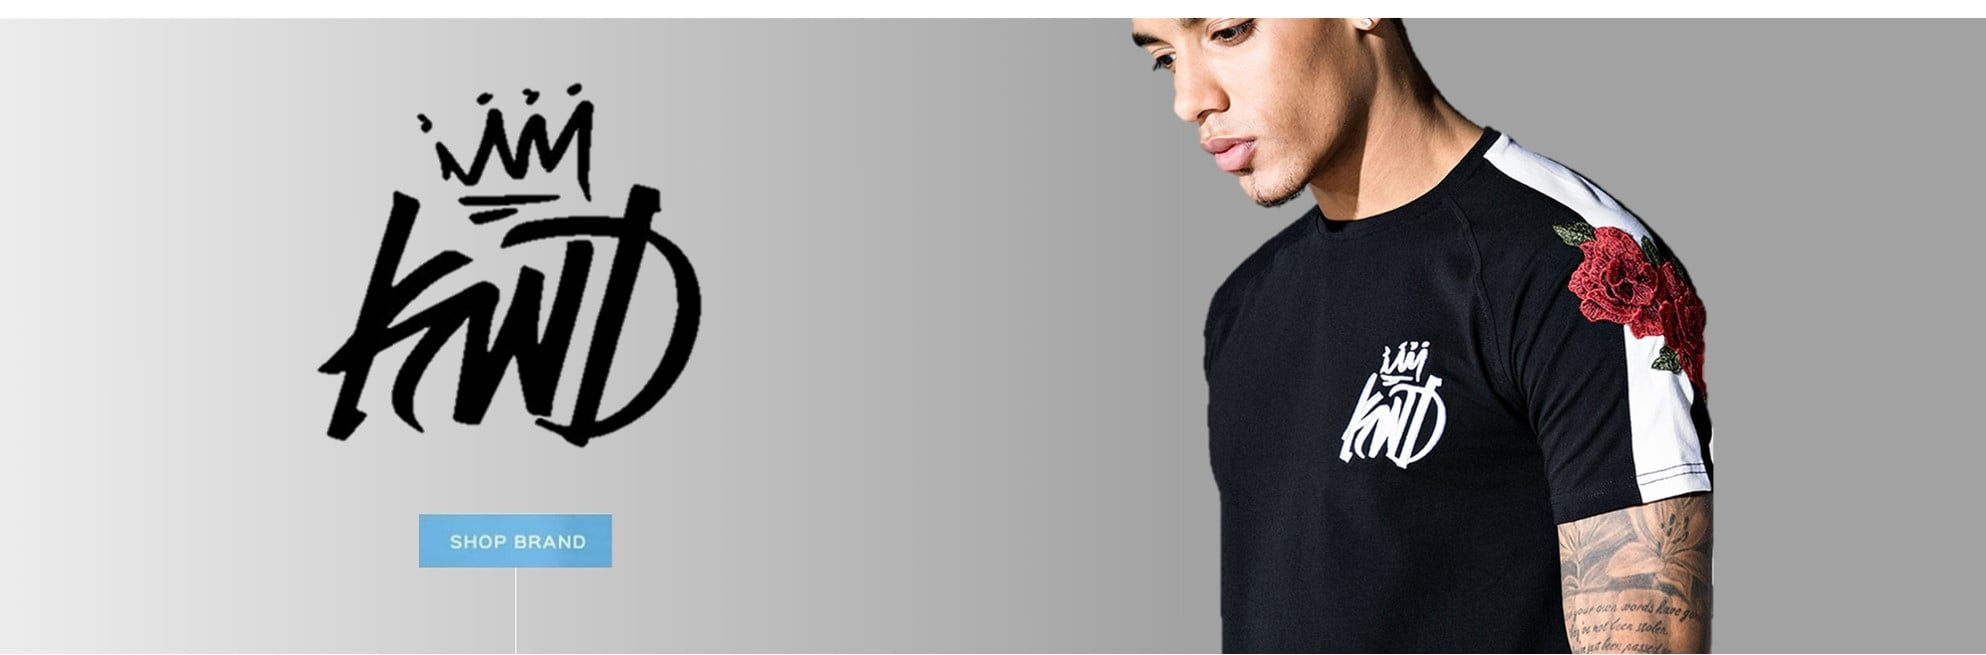 KWD New Collection - Shop Now